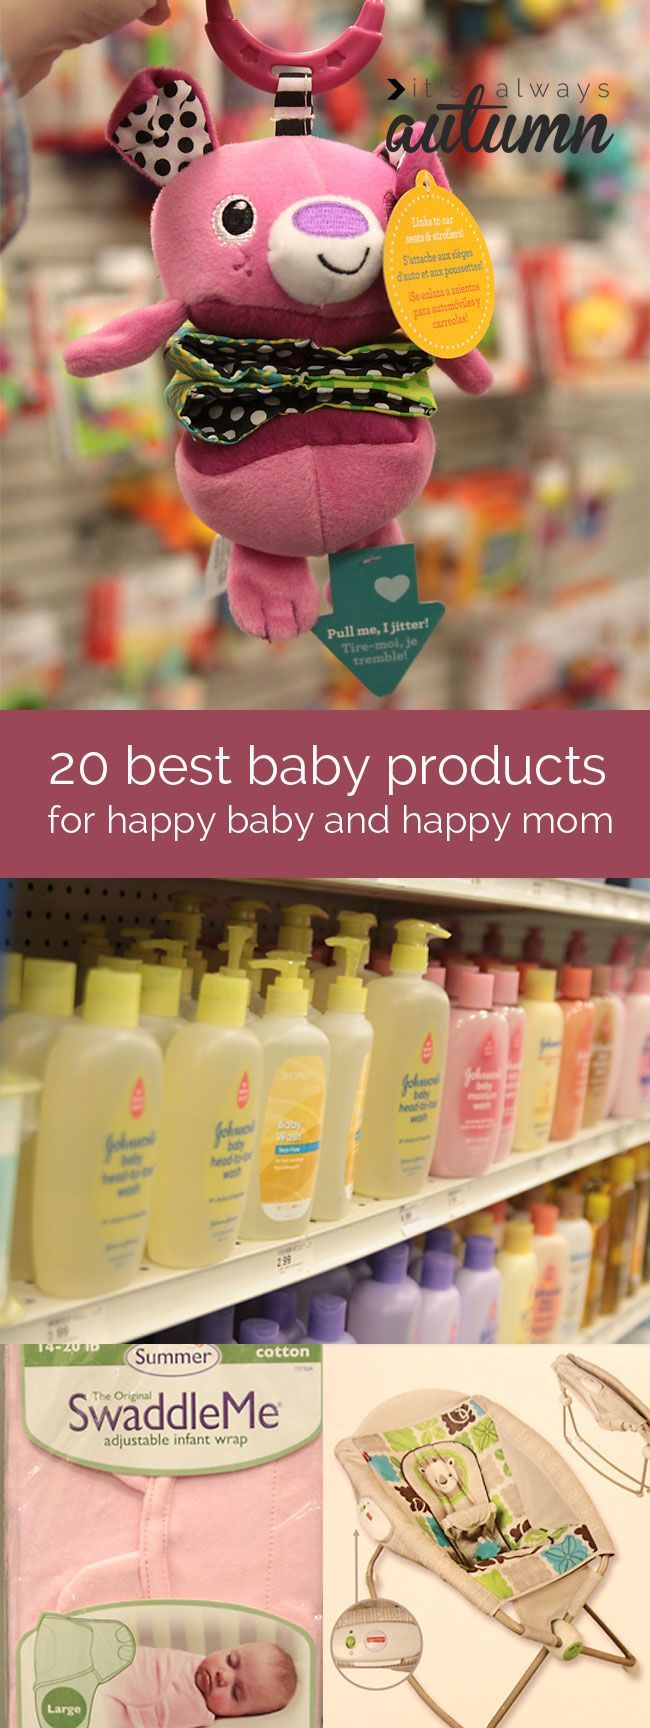 20 best baby products for a new mom - honestly, no one needs all of these things, but many of them would sure make life easier!